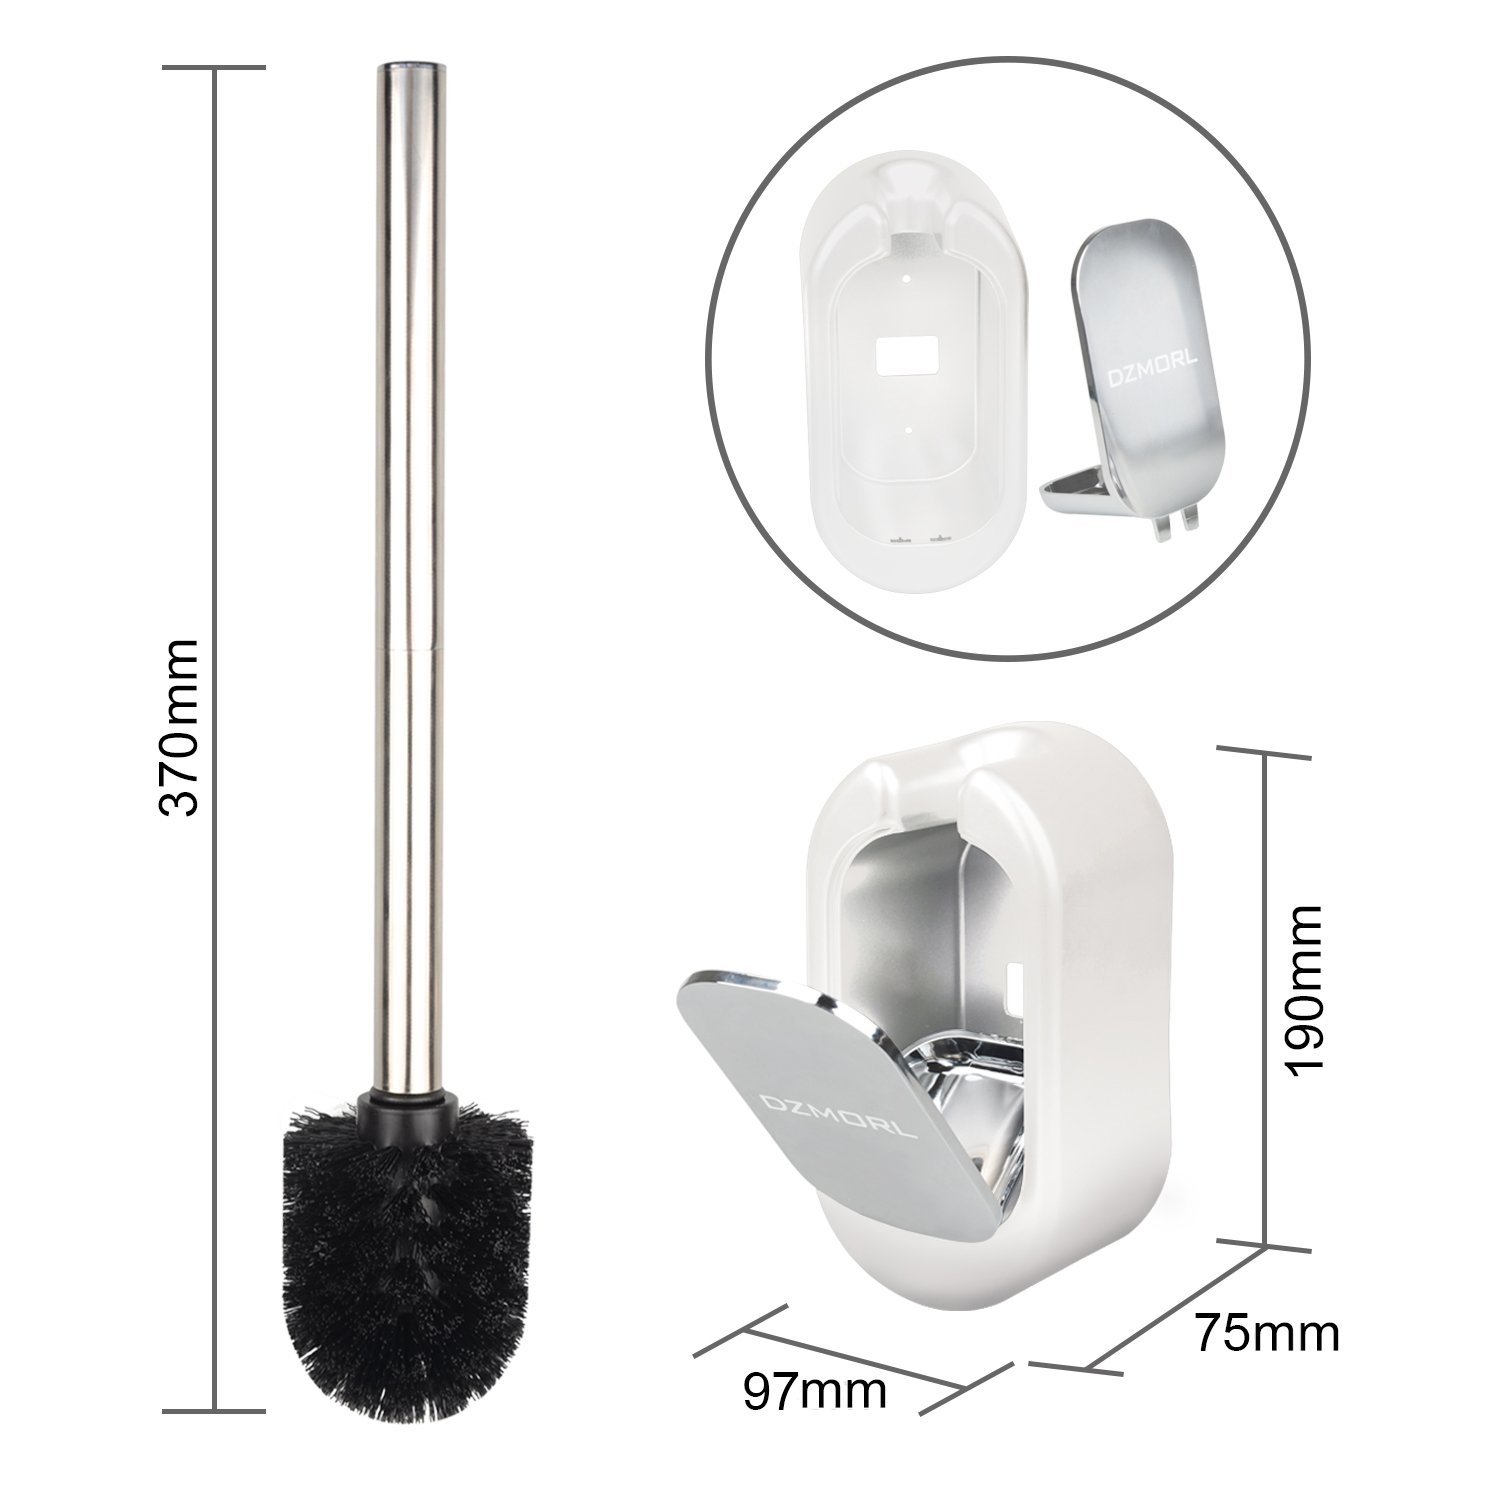 JIMS STORE Toilet Brush Set Wall Mounted Closed Toilet Brush Holder Removable Toilet Brush with Stainless Steel Handle for Bathroom Cleaning White